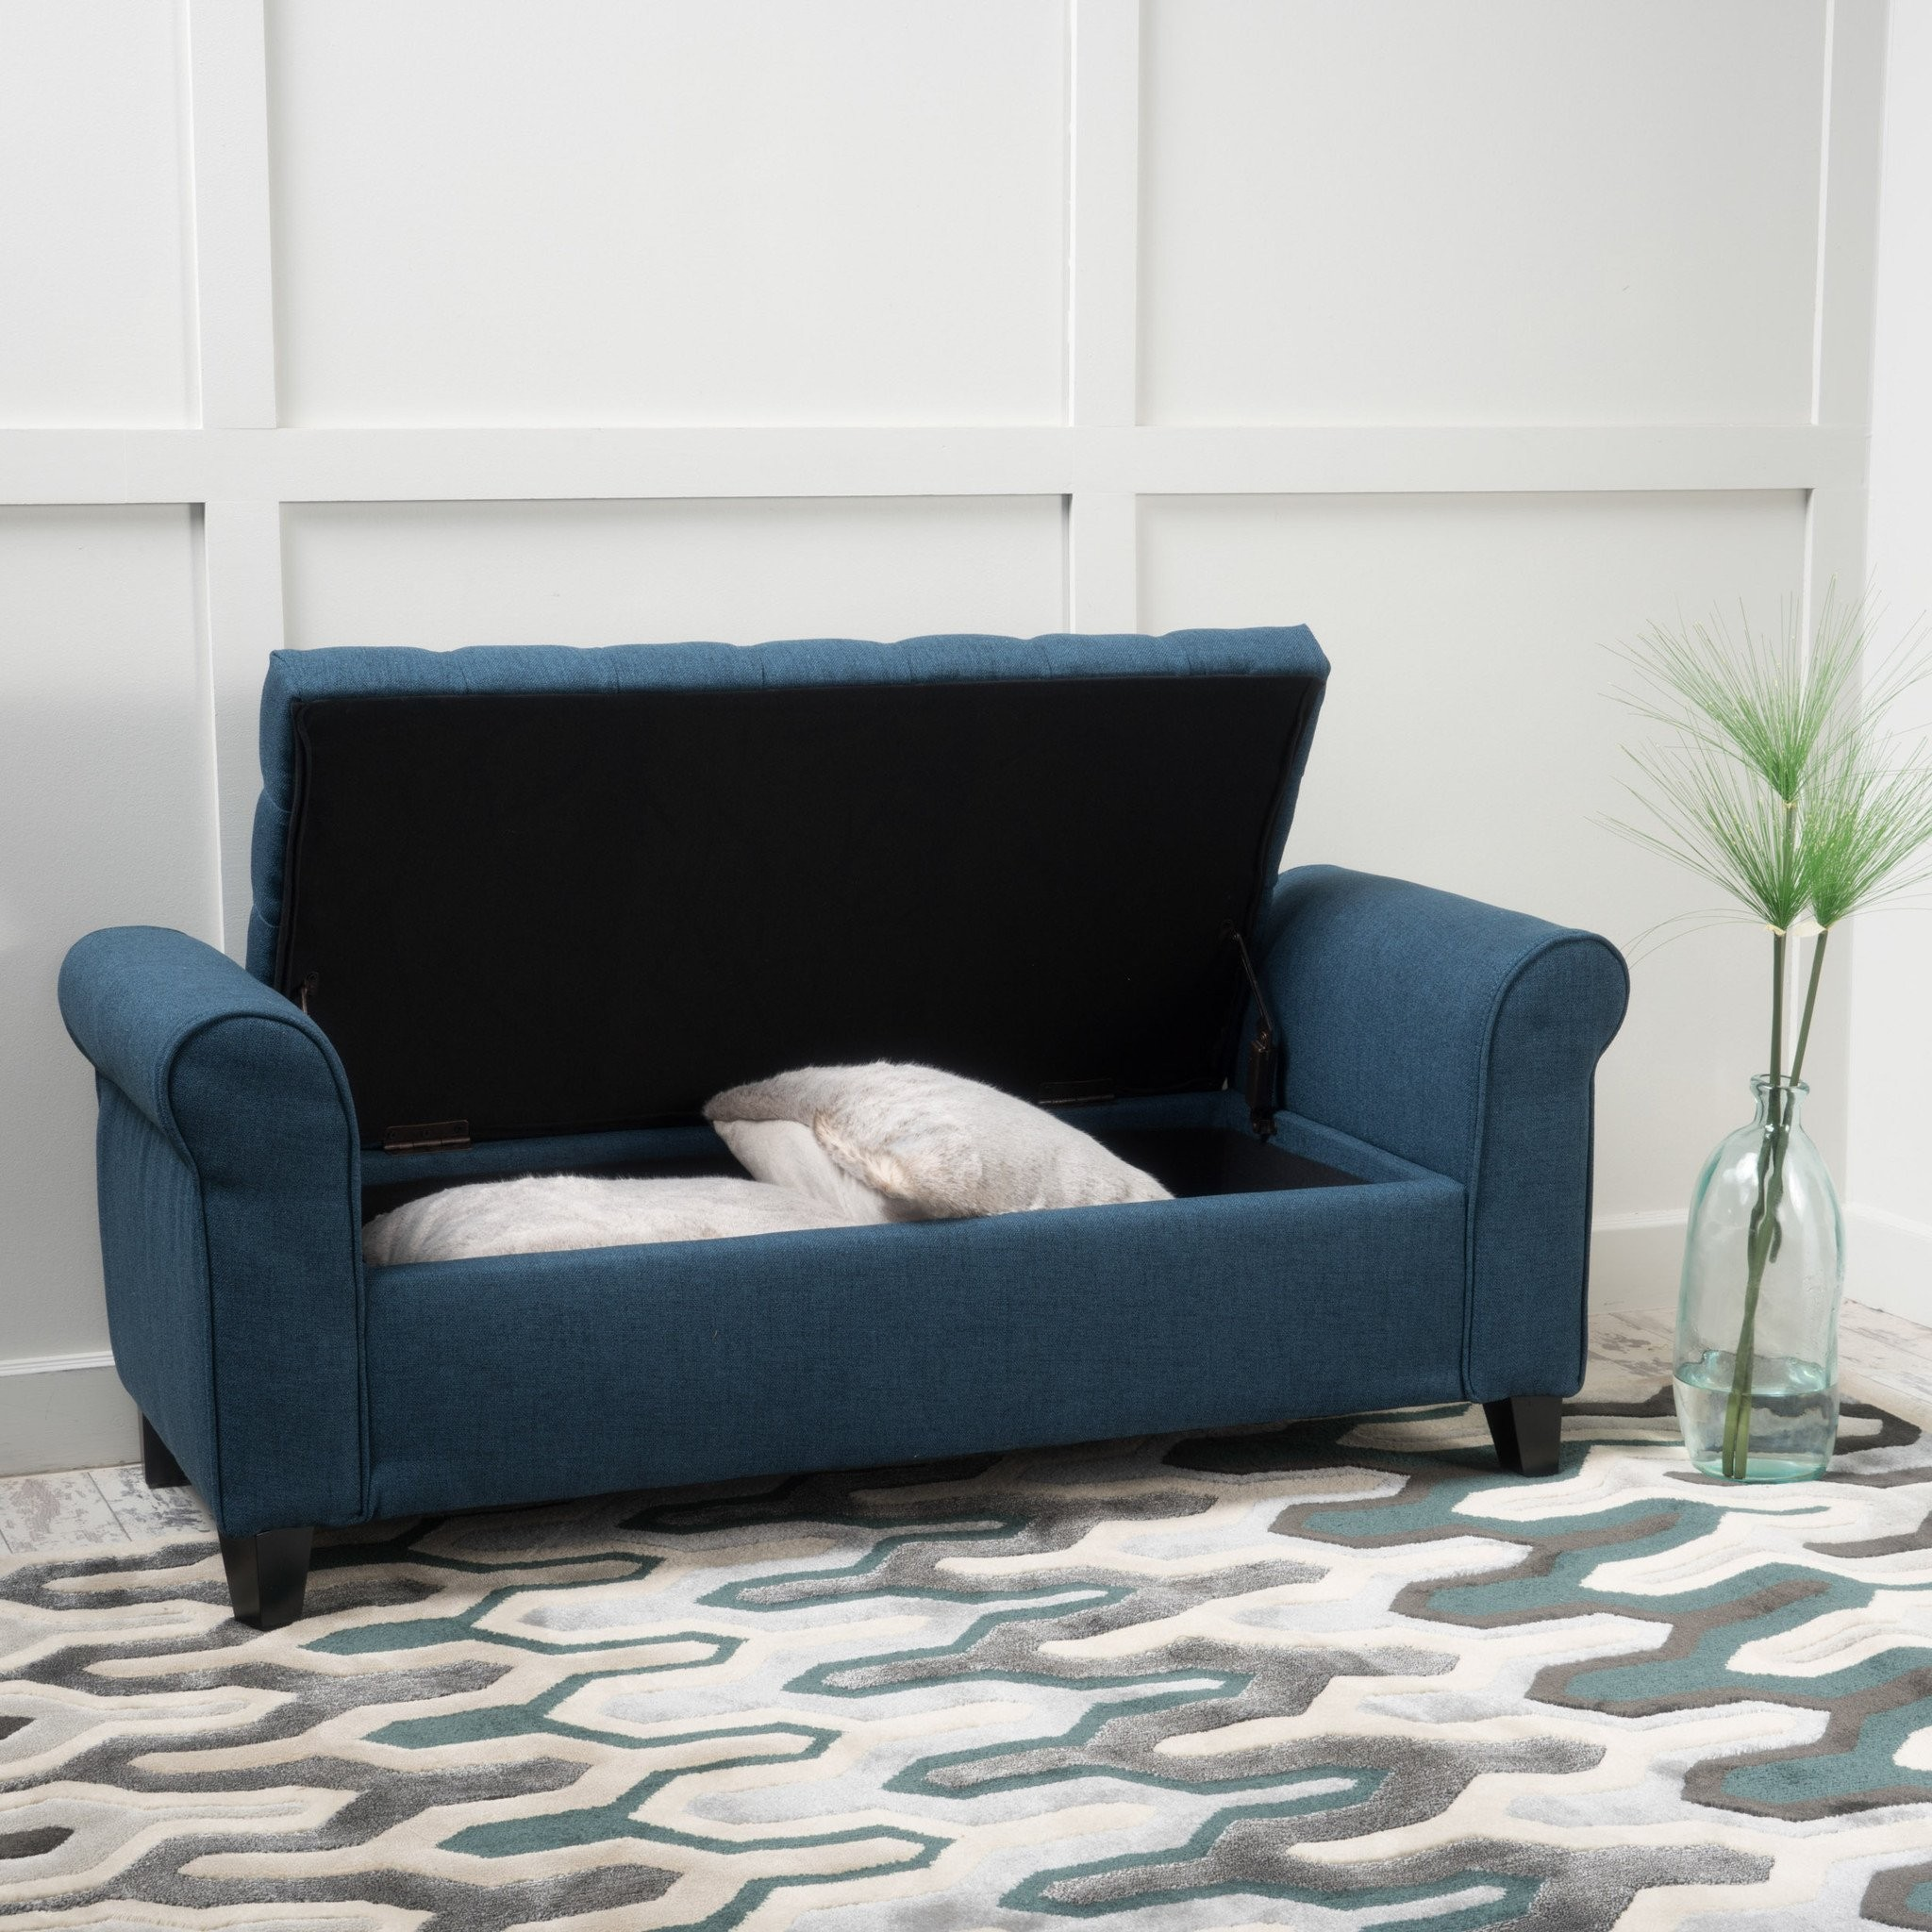 Charlemagne Dark Blue Fabric Armed Storage Bench